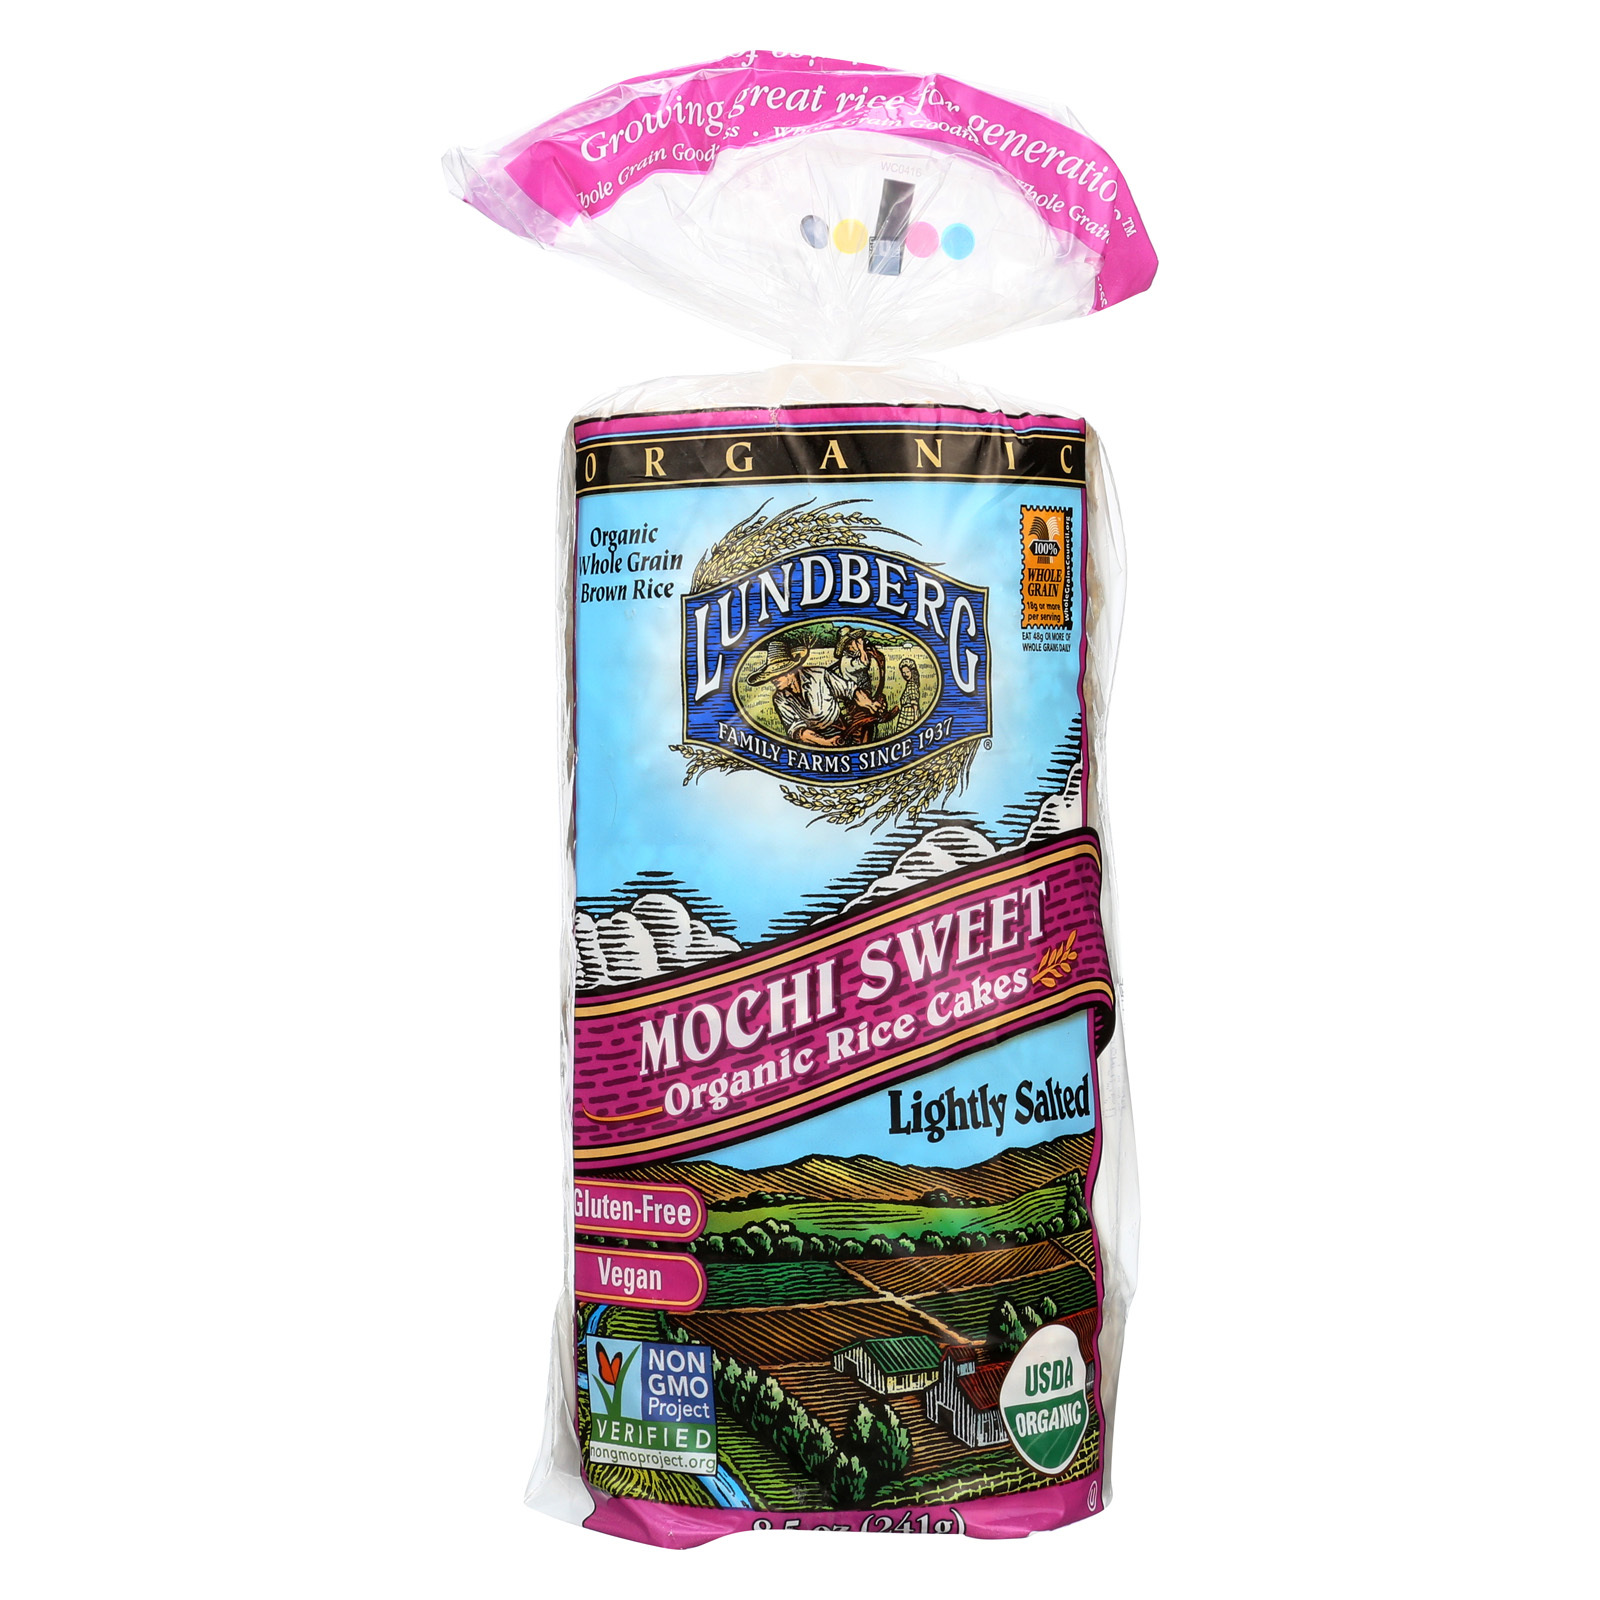 Lundberg Family Farms Organic Mochi Sweet Rice Cake - Case of 12 - 8.5 oz.